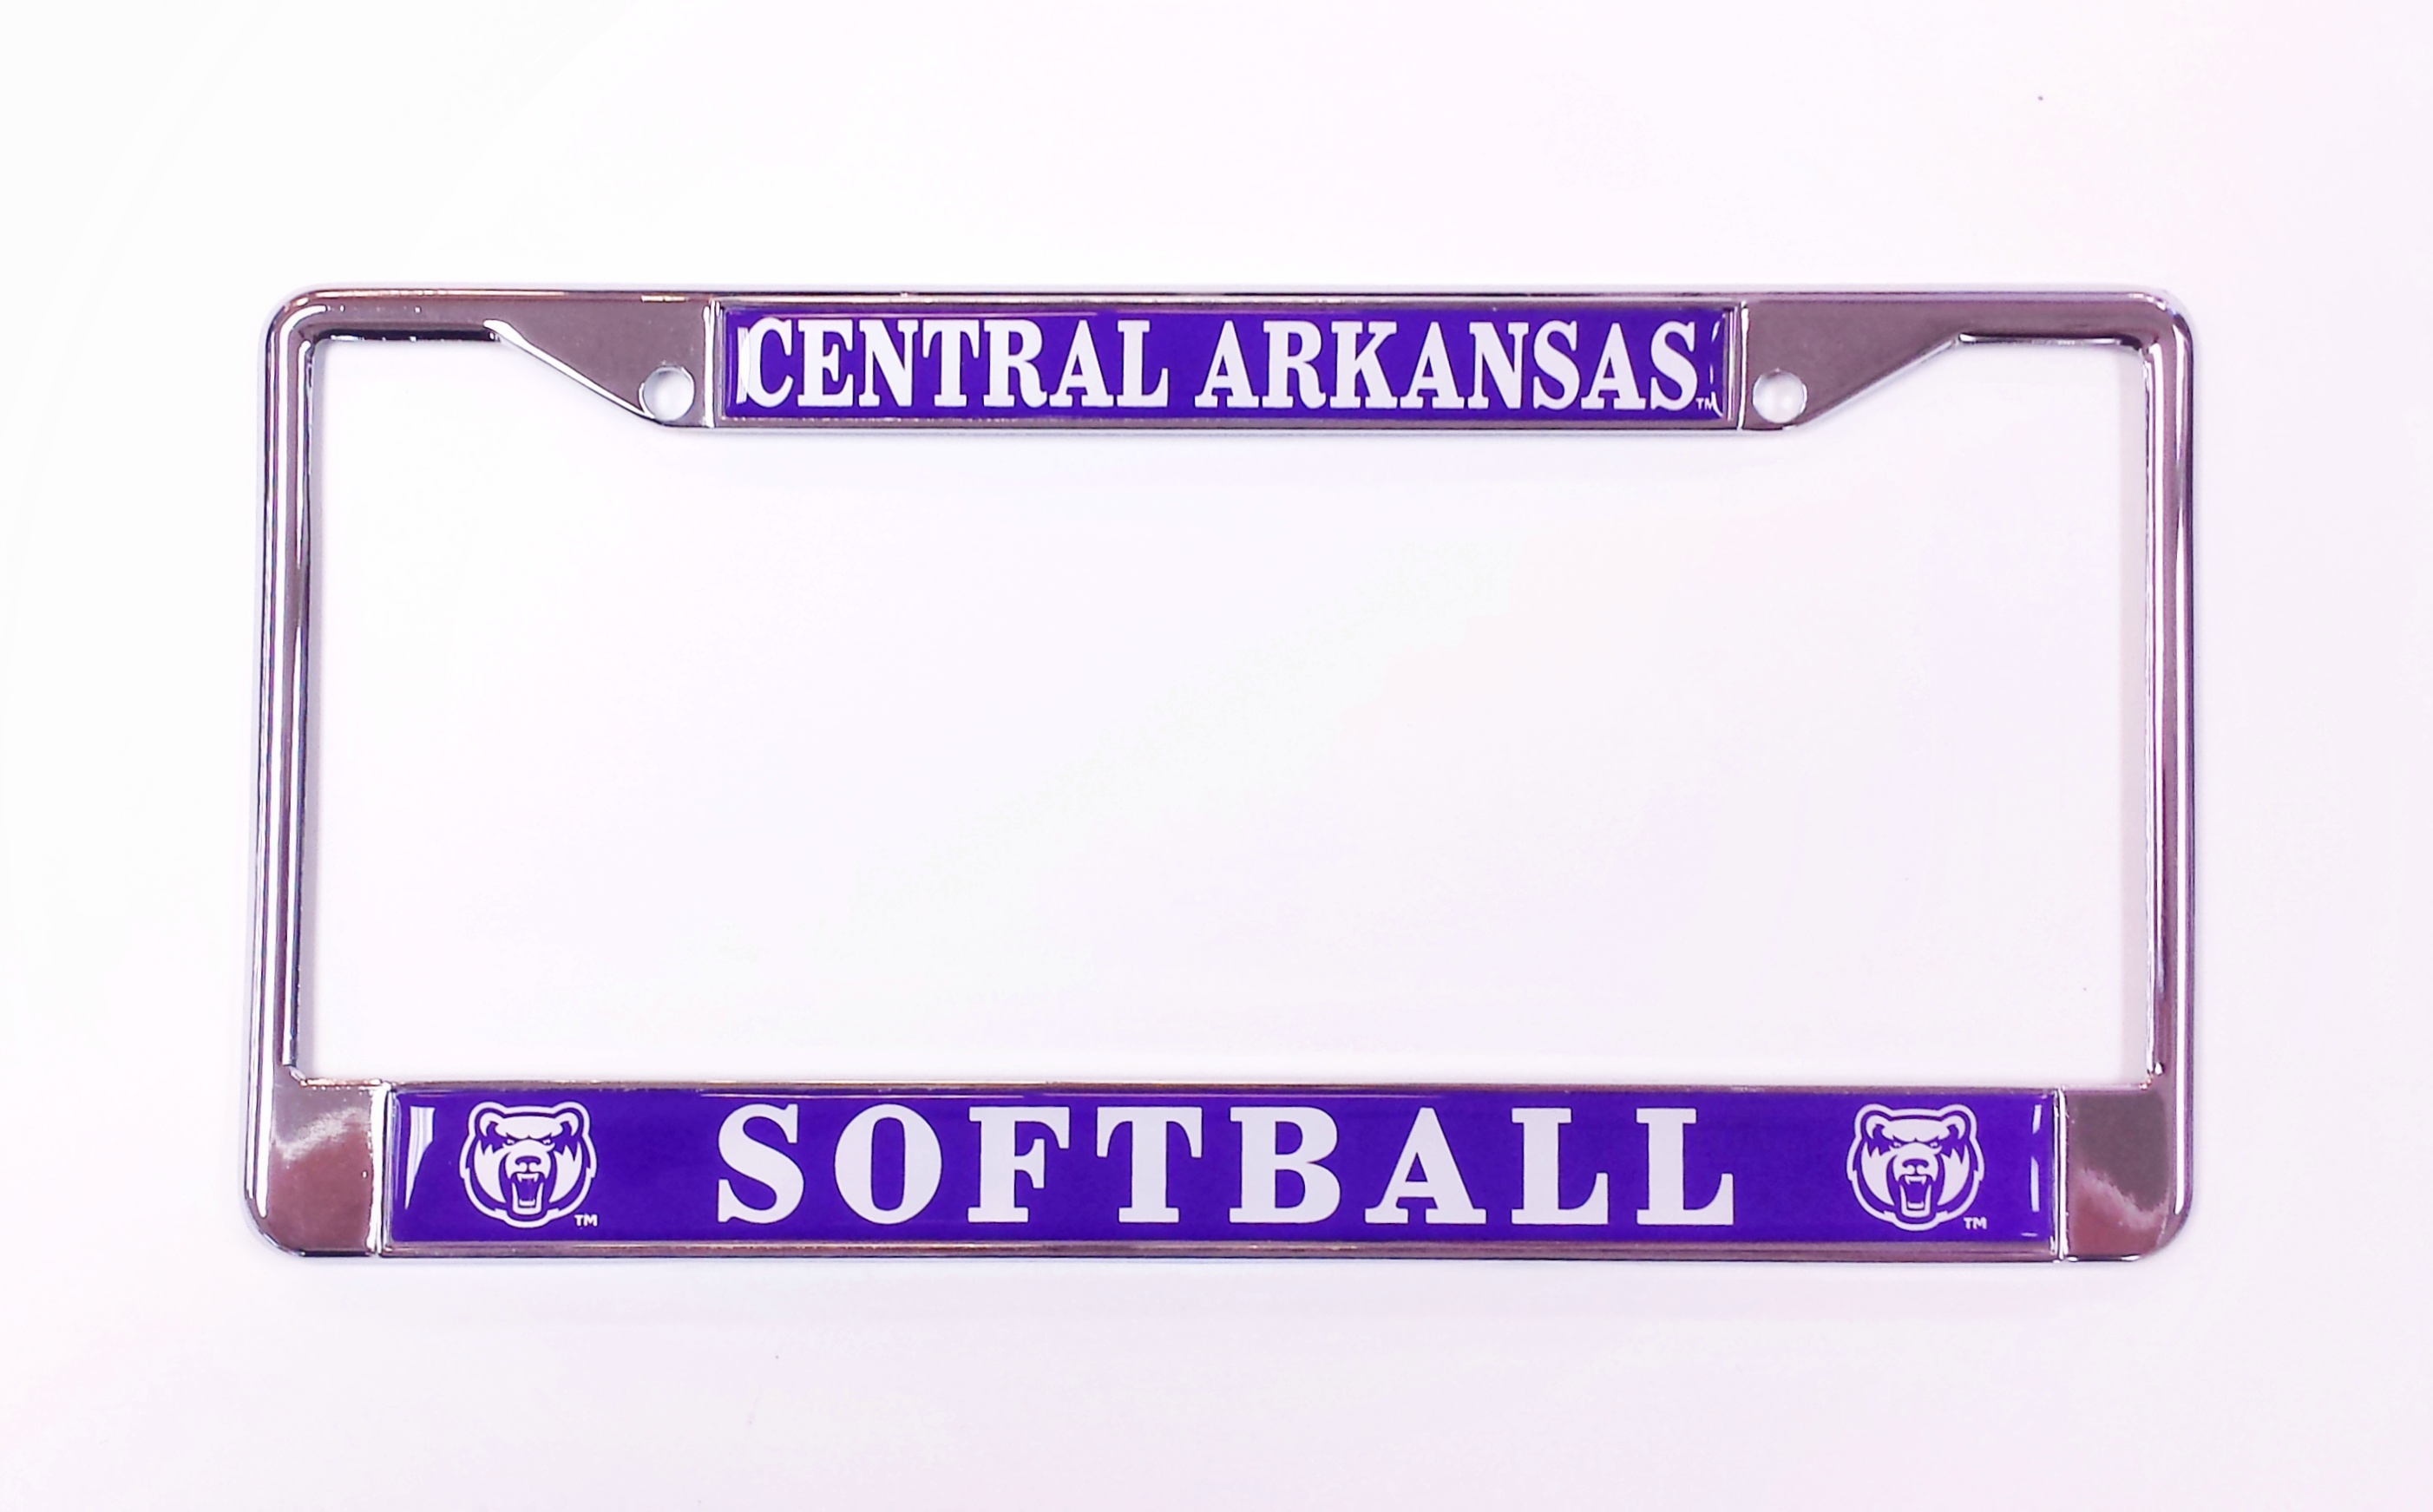 Central Arkansas Softball License Frame